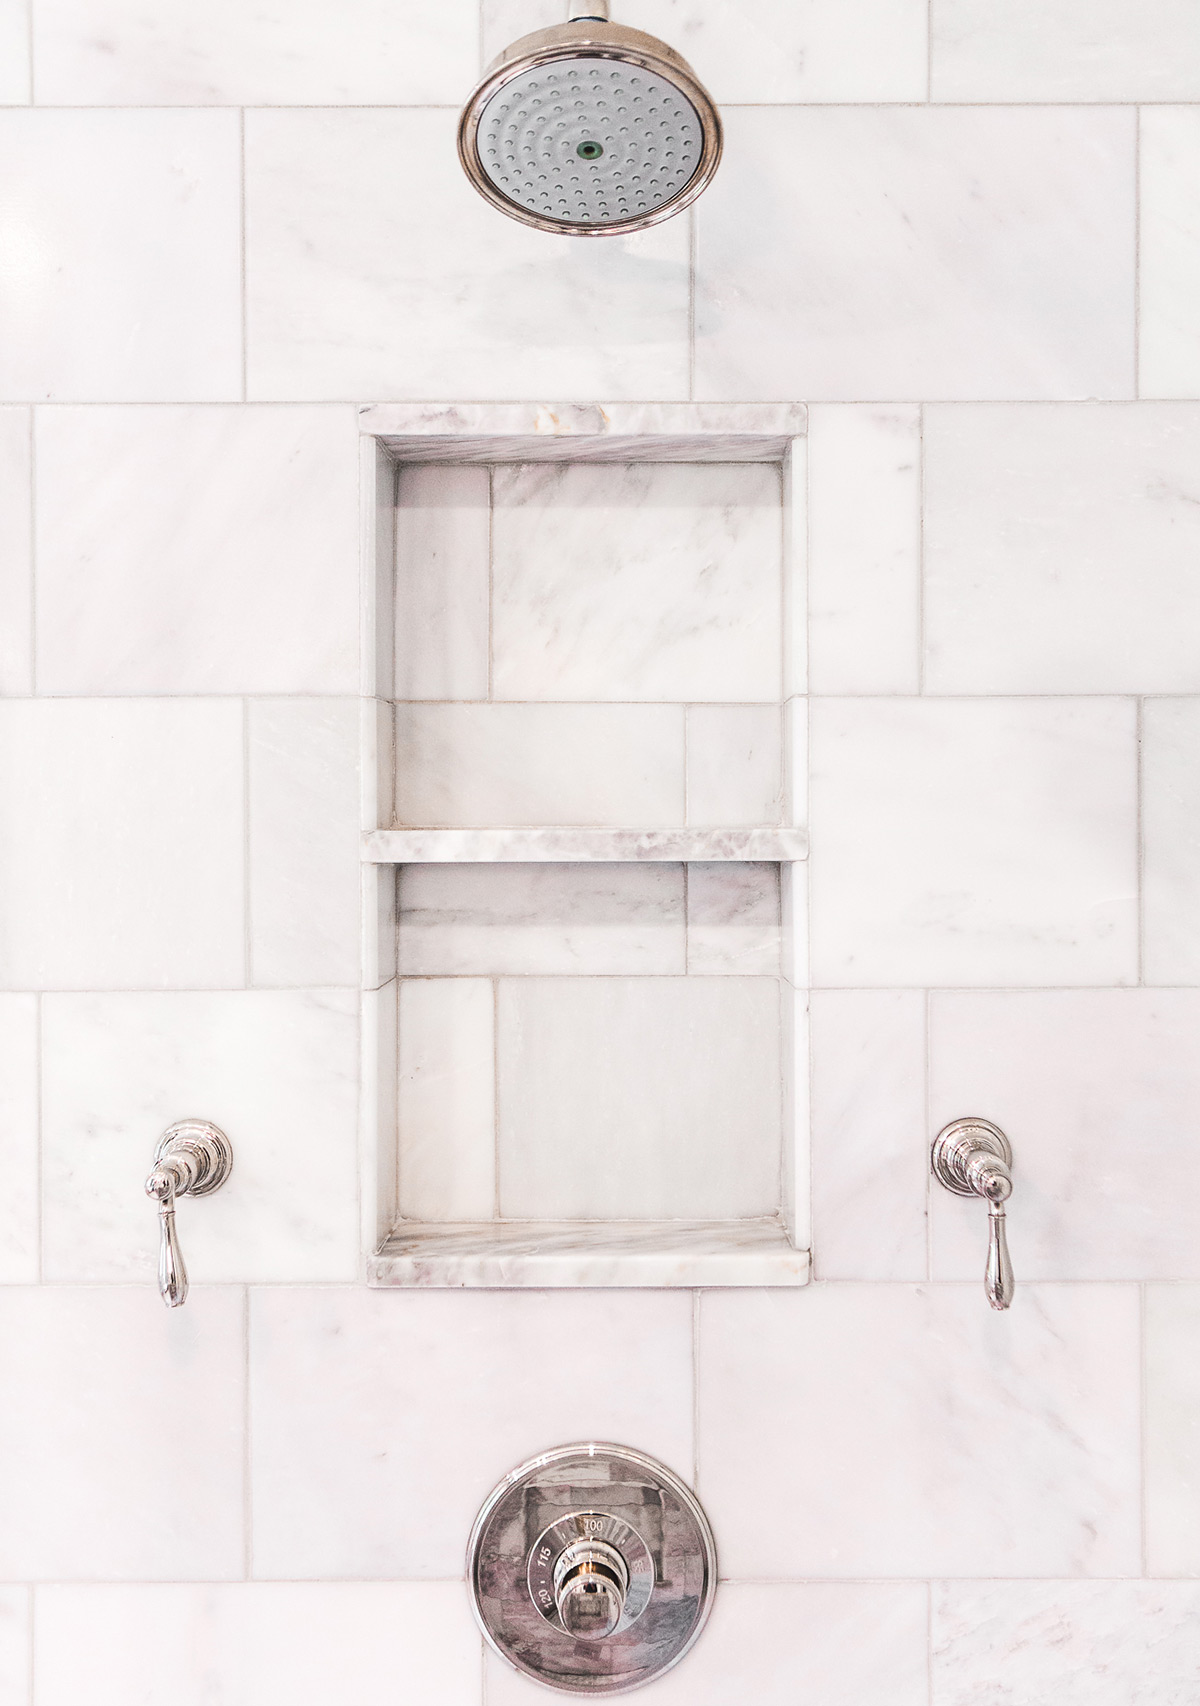 Details on Shower View